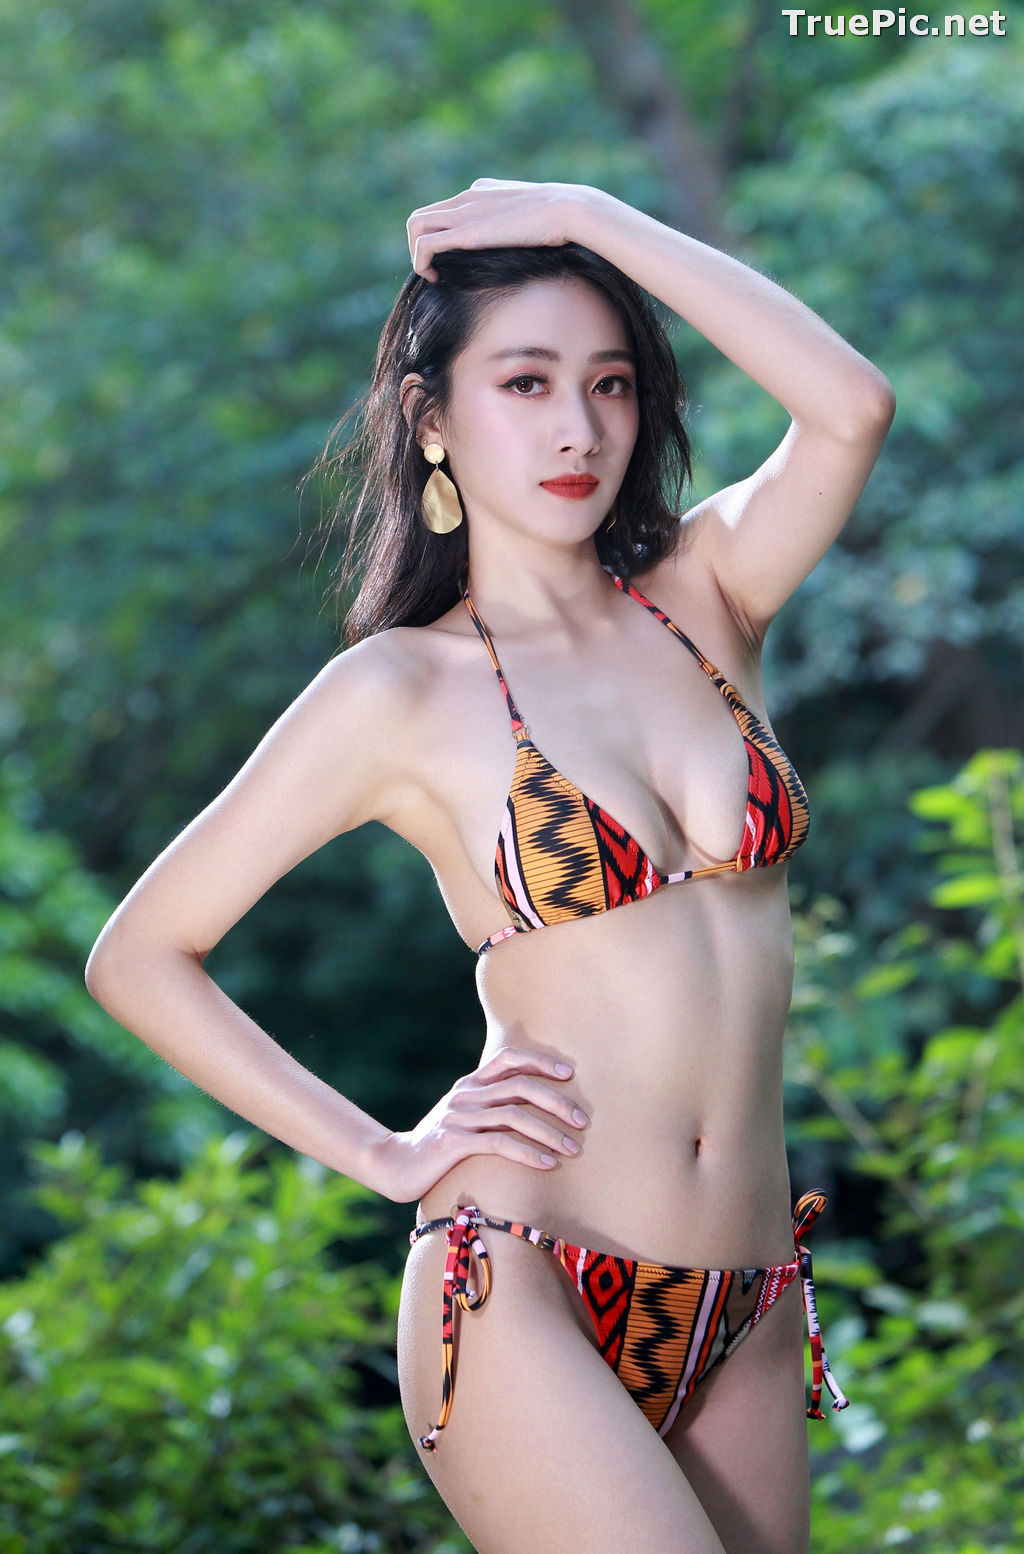 Image Taiwanese Model - 段璟樂 - Lovely and Sexy Bikini Baby - TruePic.net - Picture-1